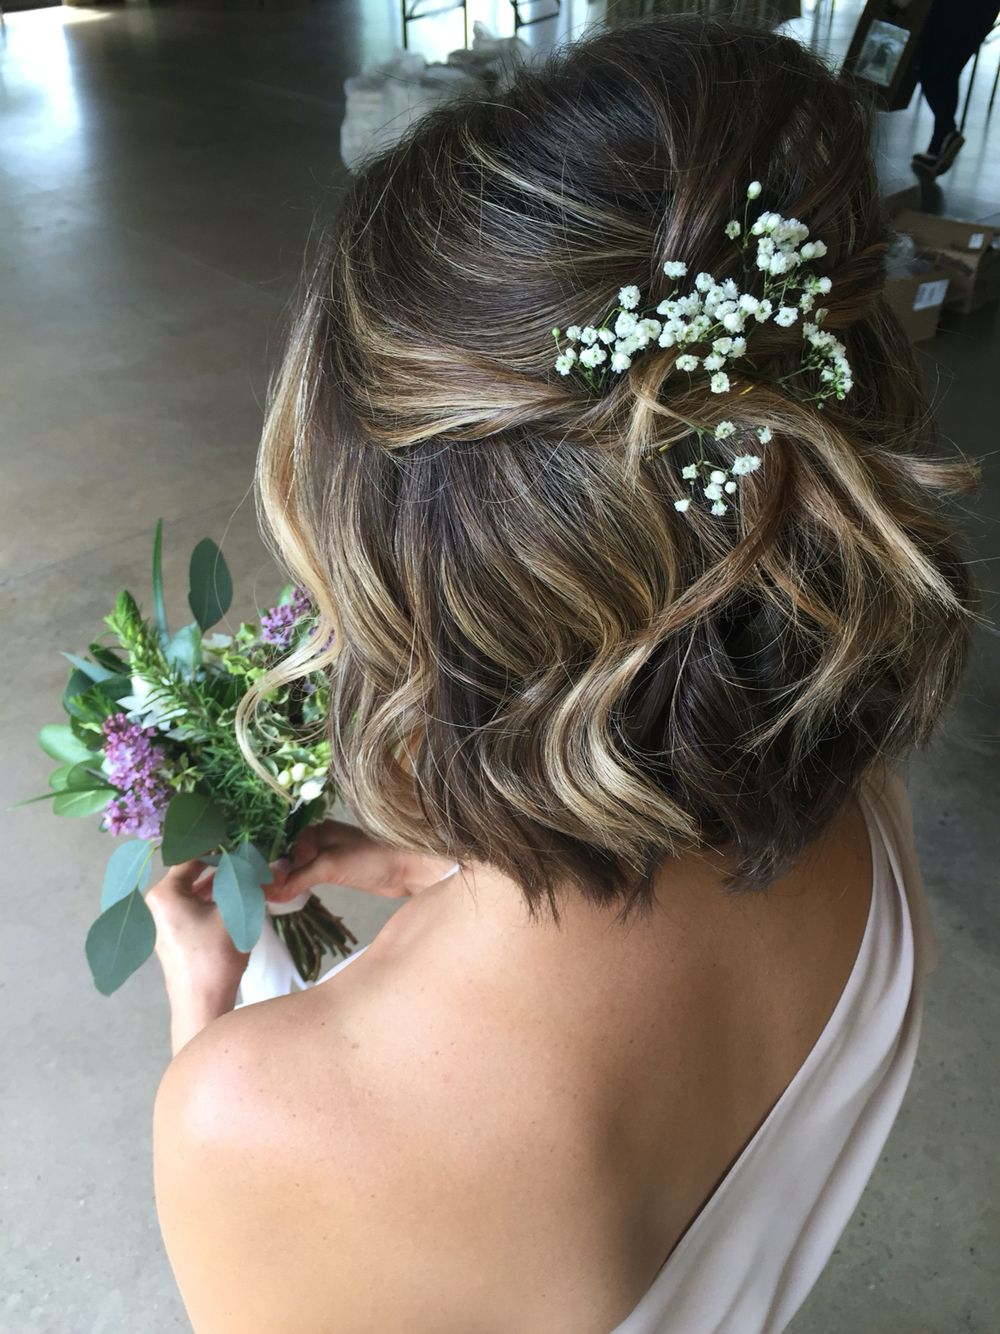 pin by desiree alexandre on hair | peinados boda pelo corto